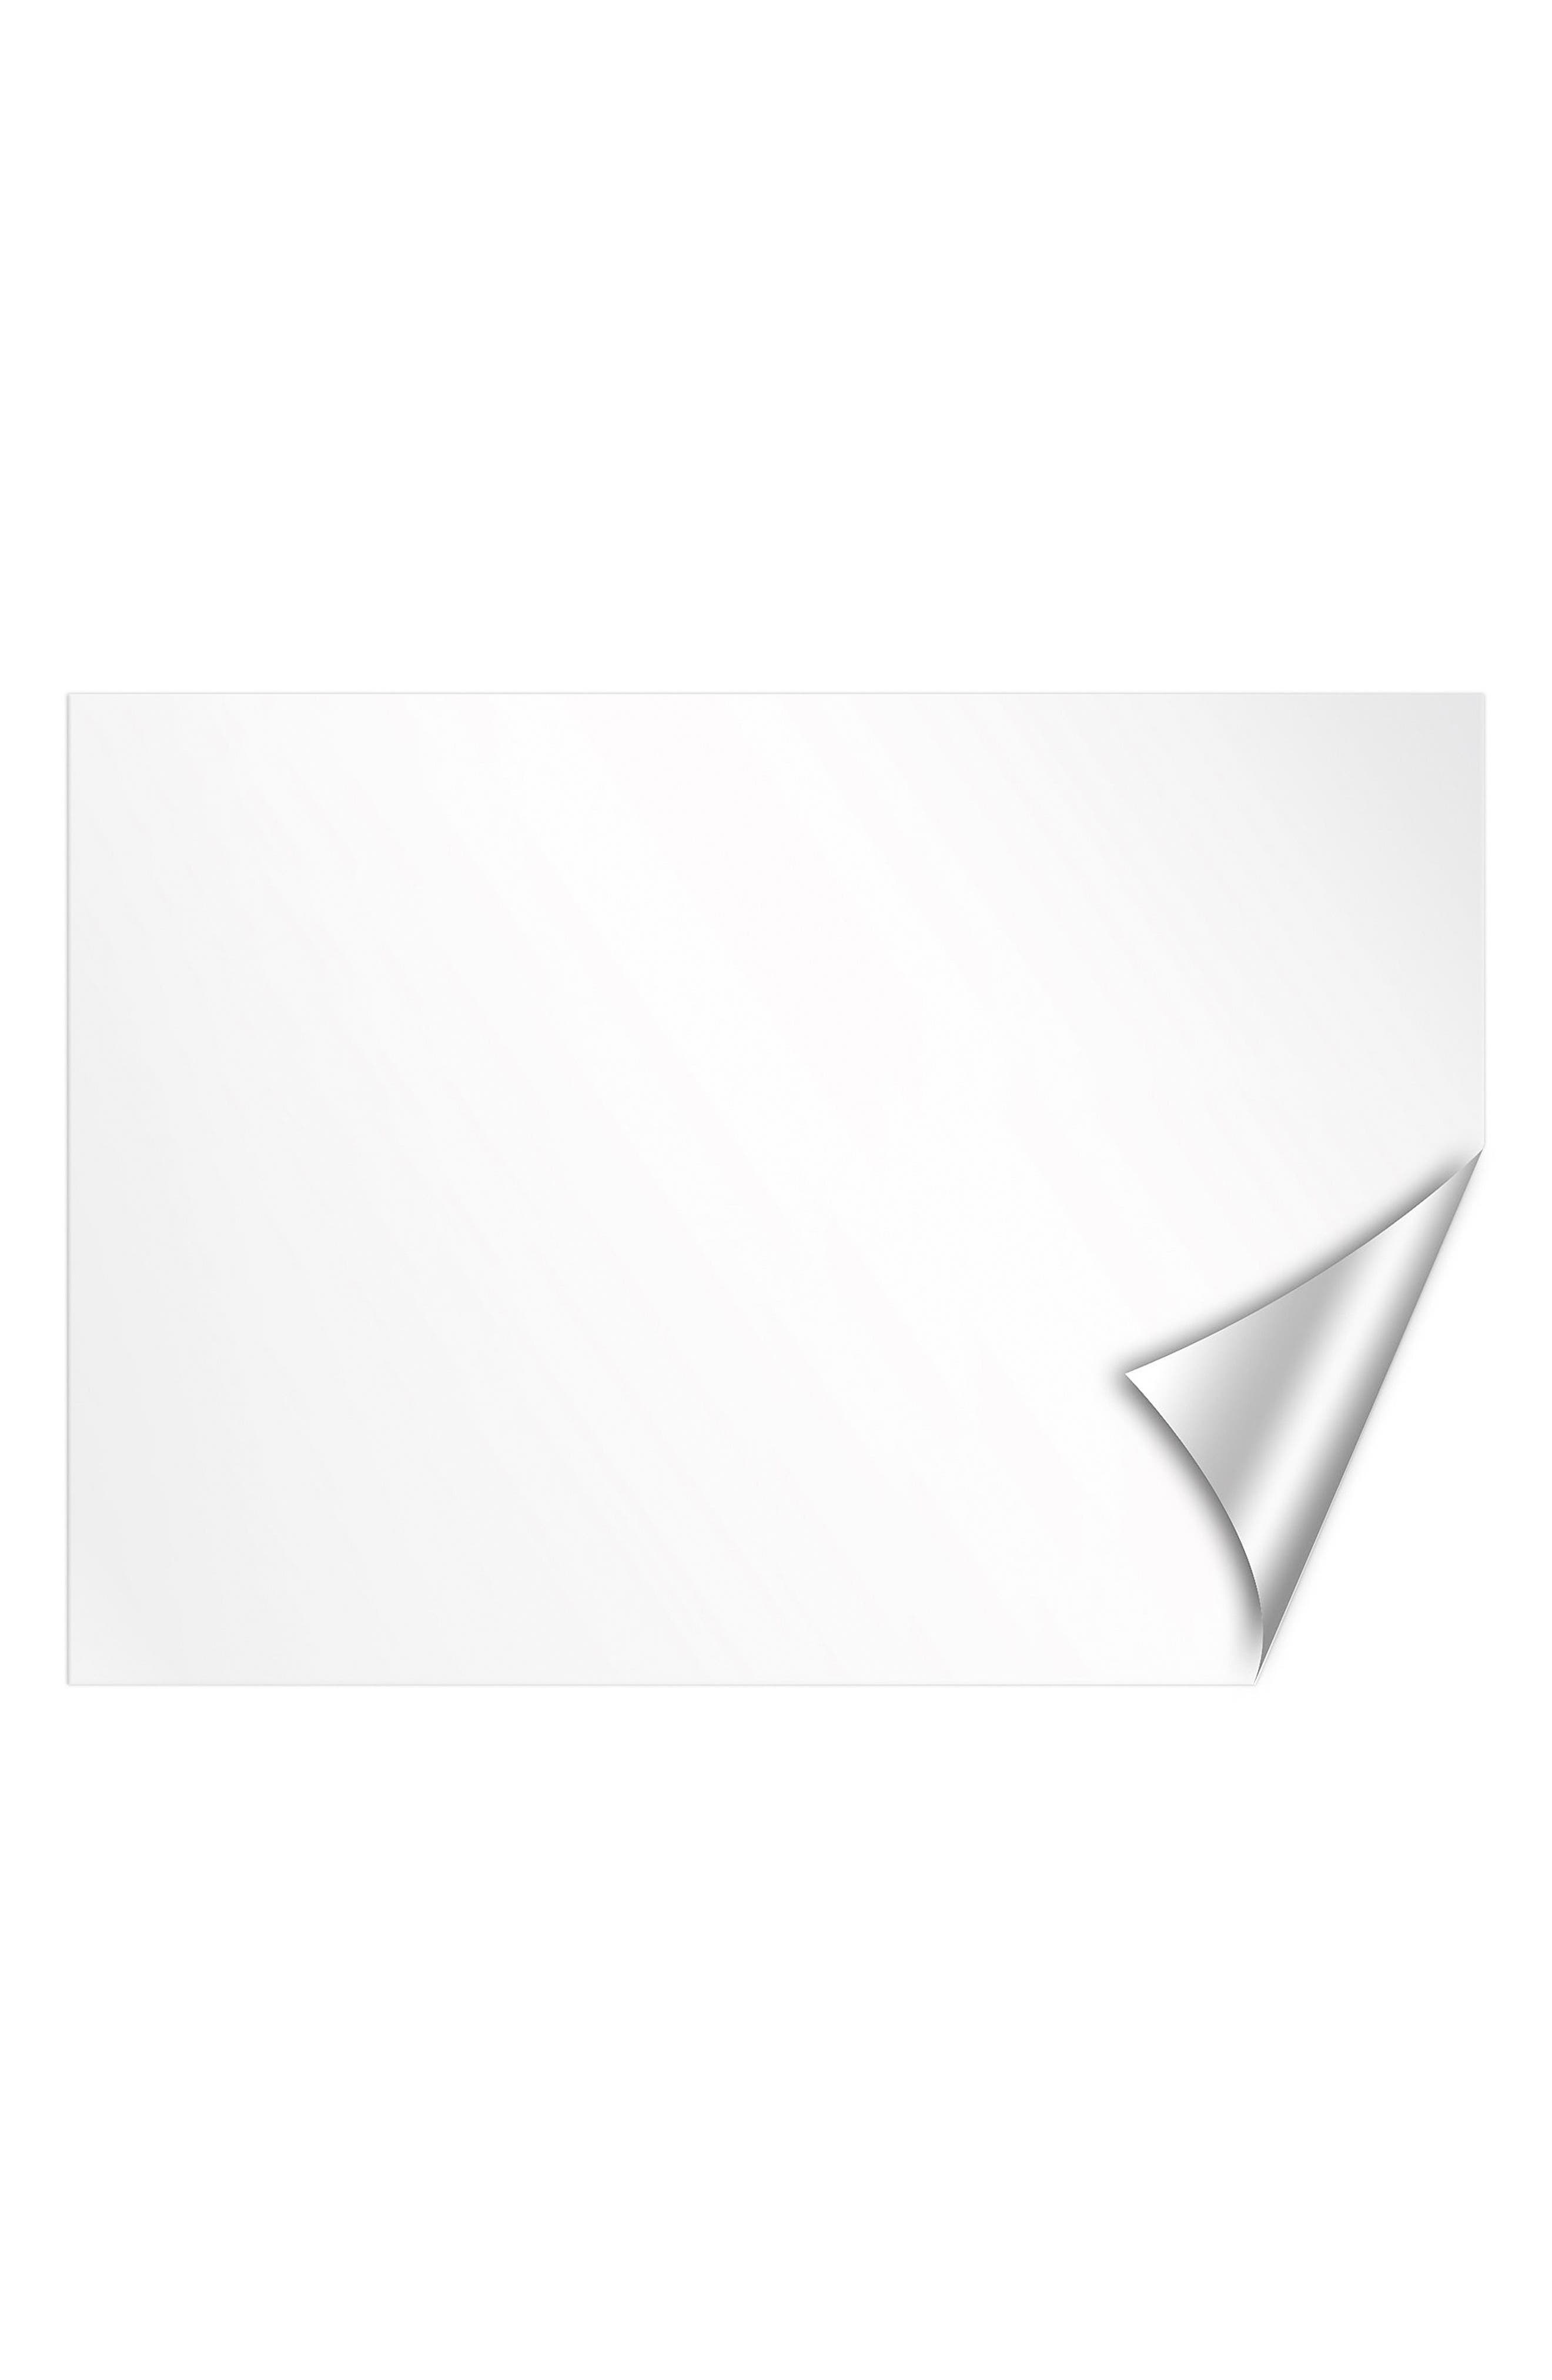 Main Image - Wallpops Set of 2 Dry Erase Wall Decals